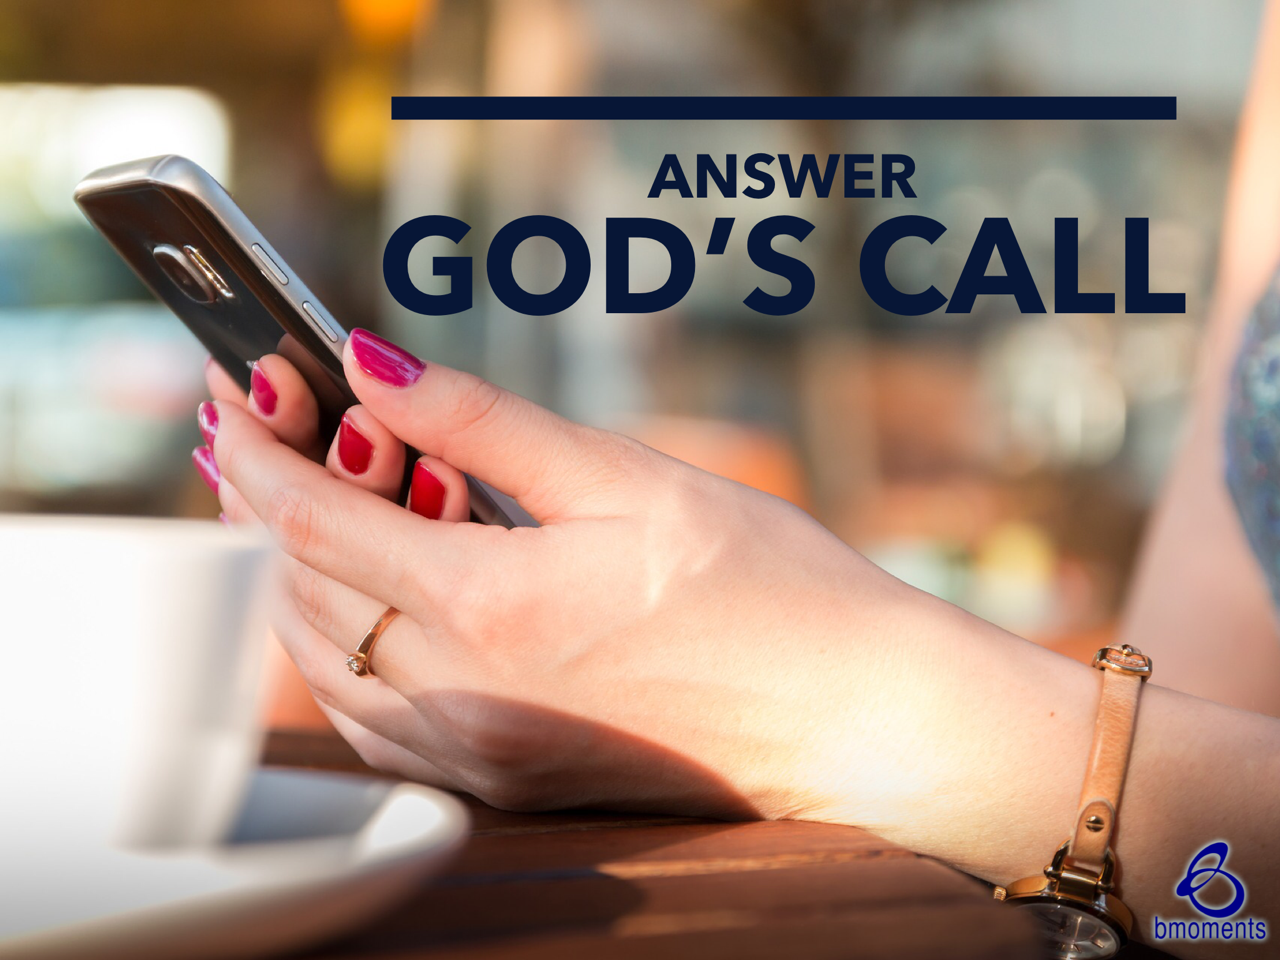 Get Ready to Receive God's Higher Calling